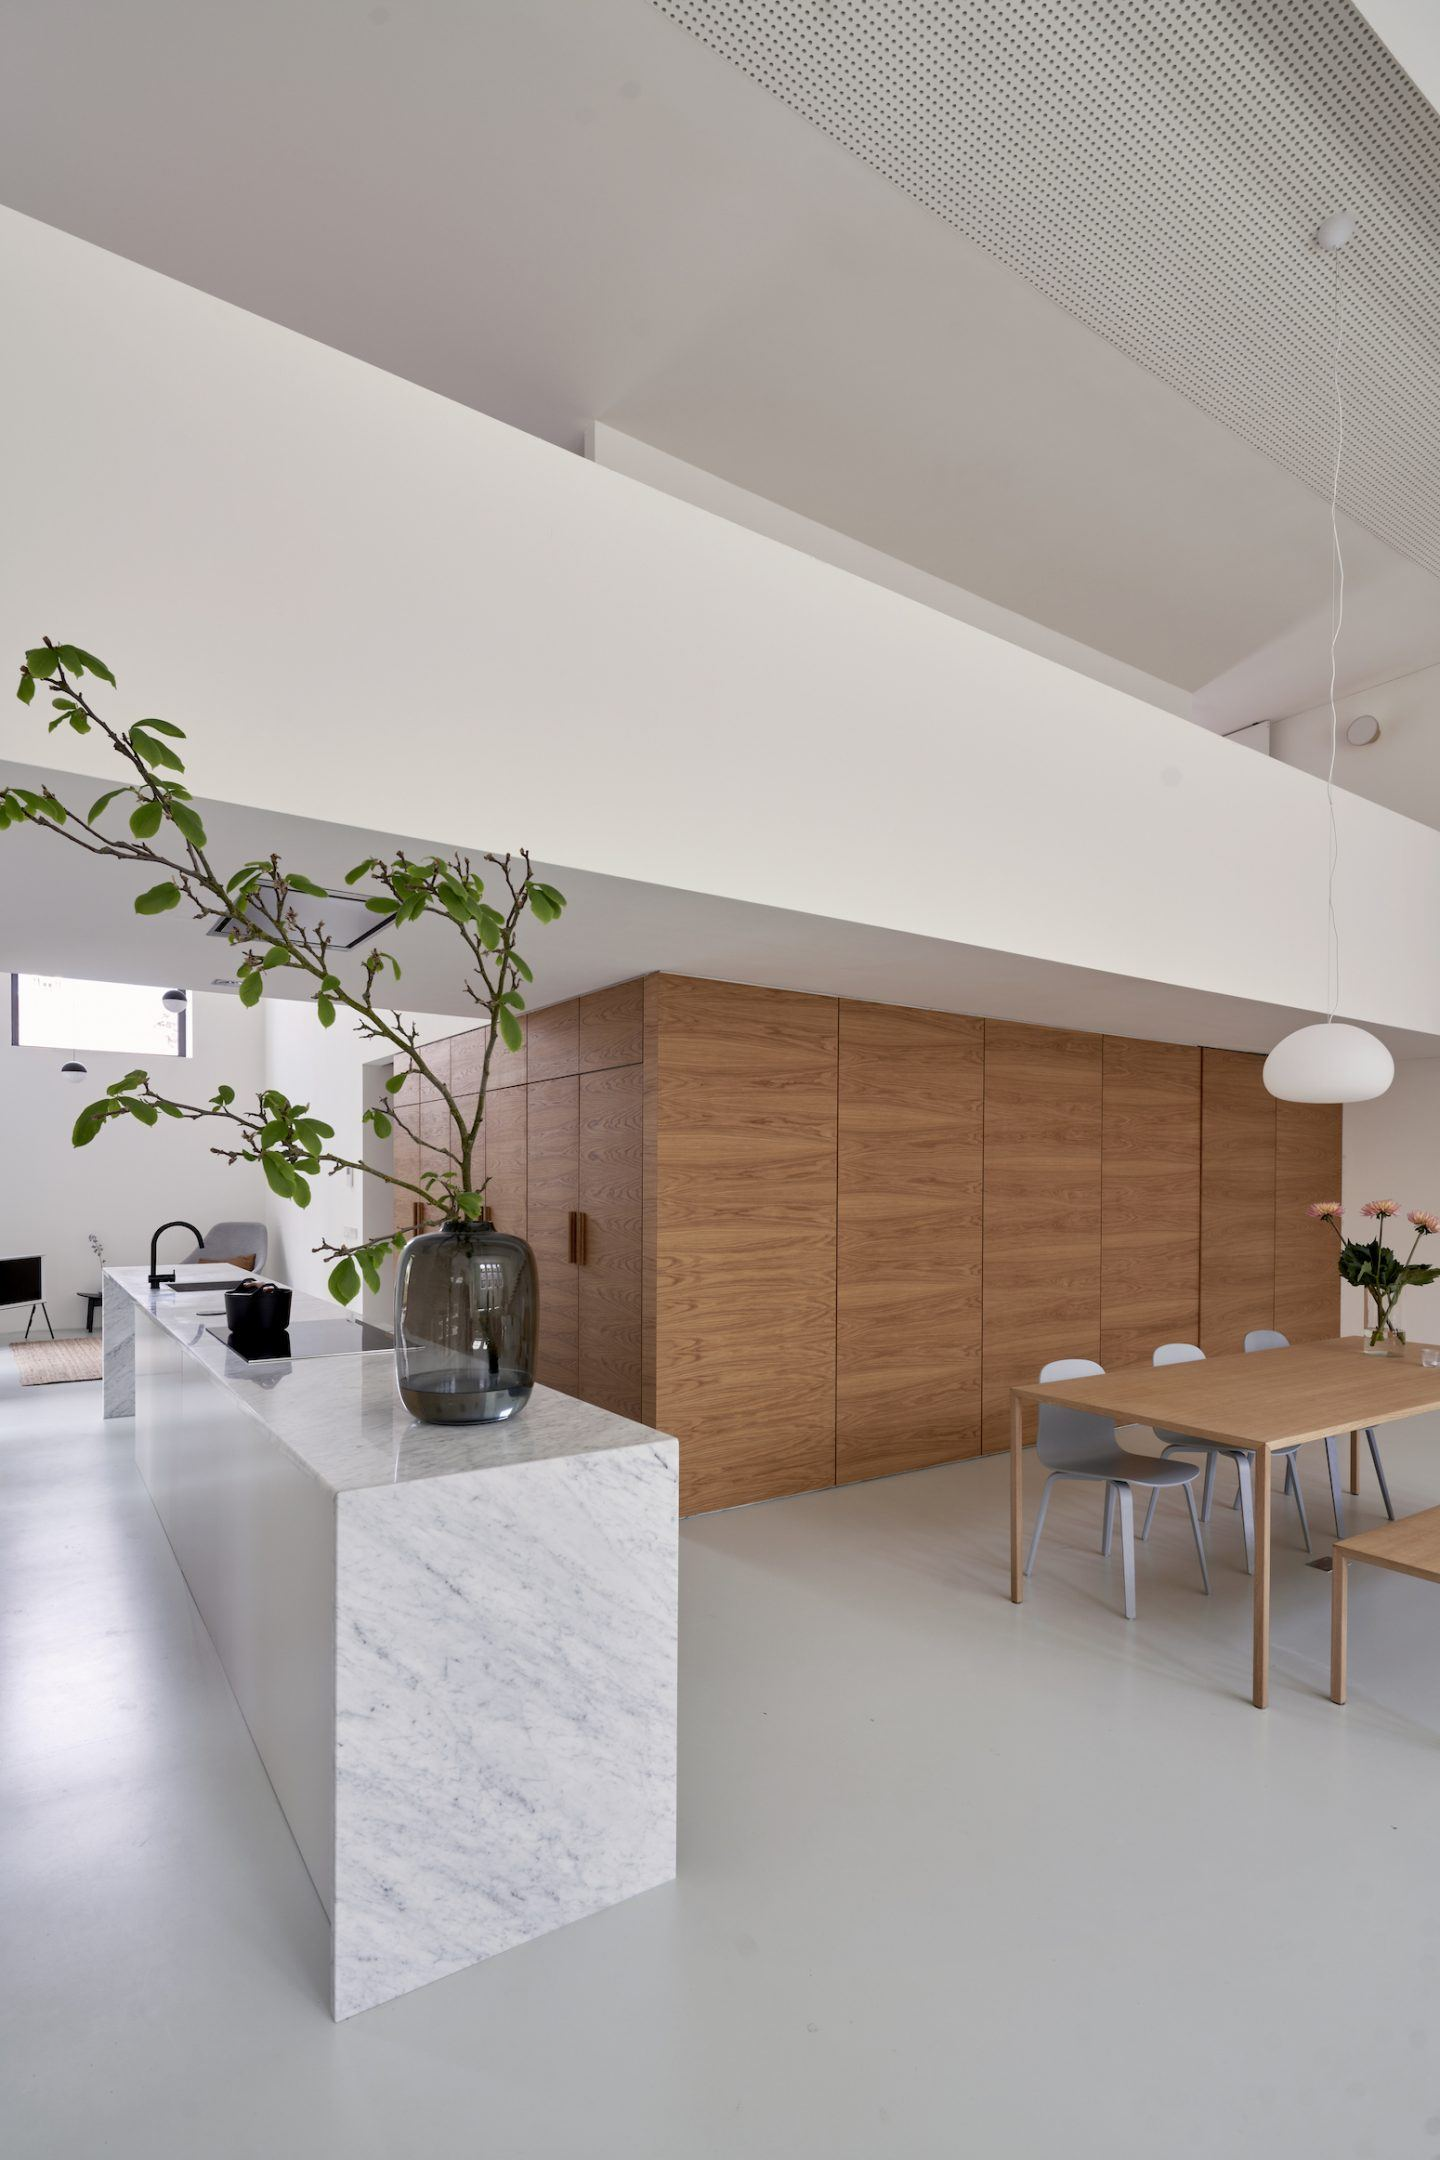 IGNANT-Architecture-Eklund-Terbeek-The-Gym-Loft-2